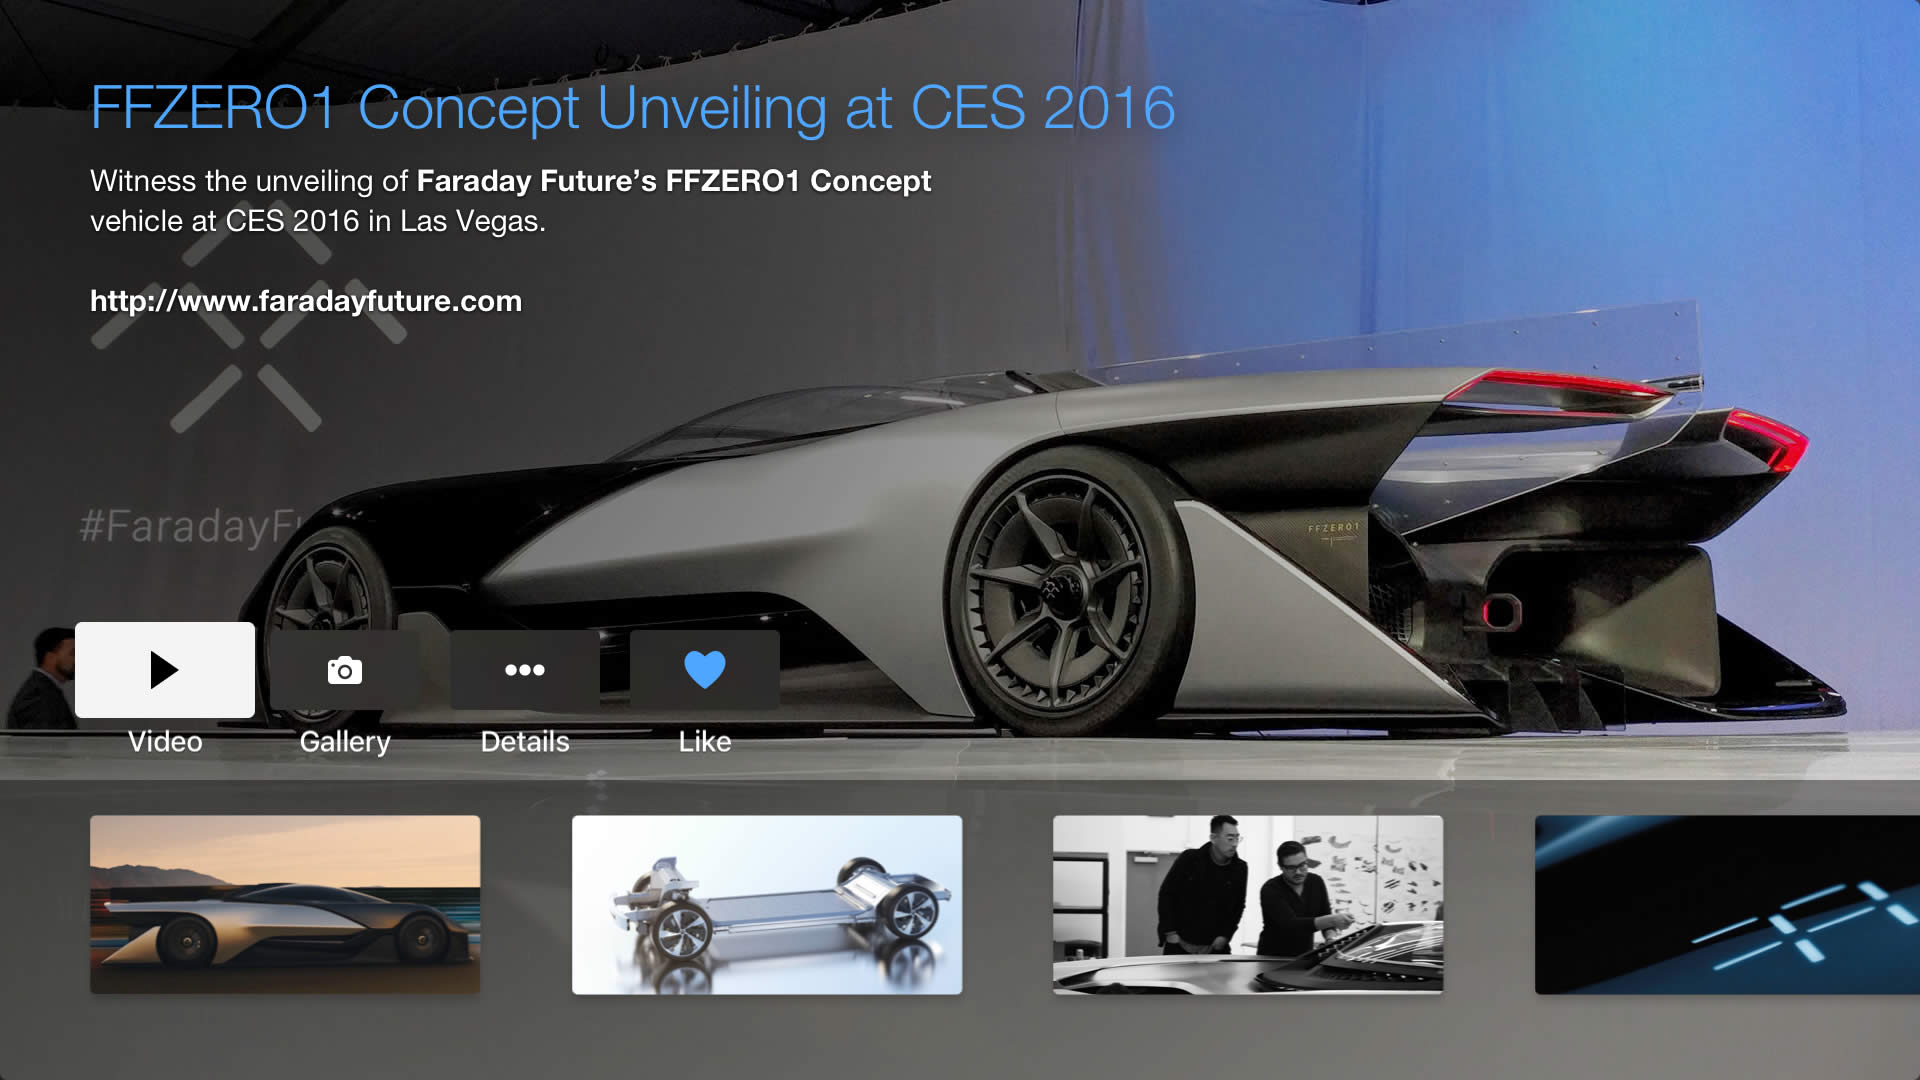 MobilityBlue Faraday Future FFZERO1 concept car